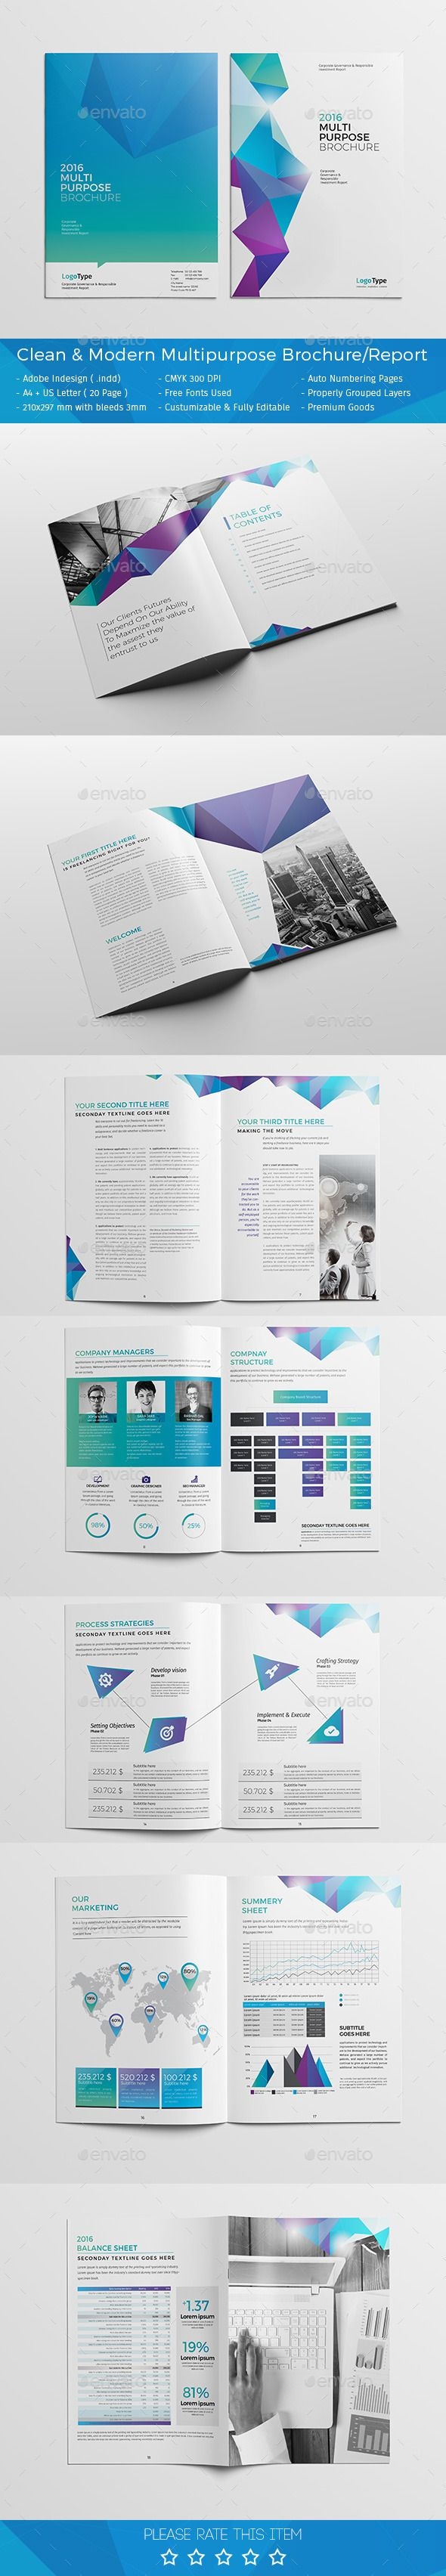 Clean  Modern Multipurpose Brochure  Report Template Design Buy